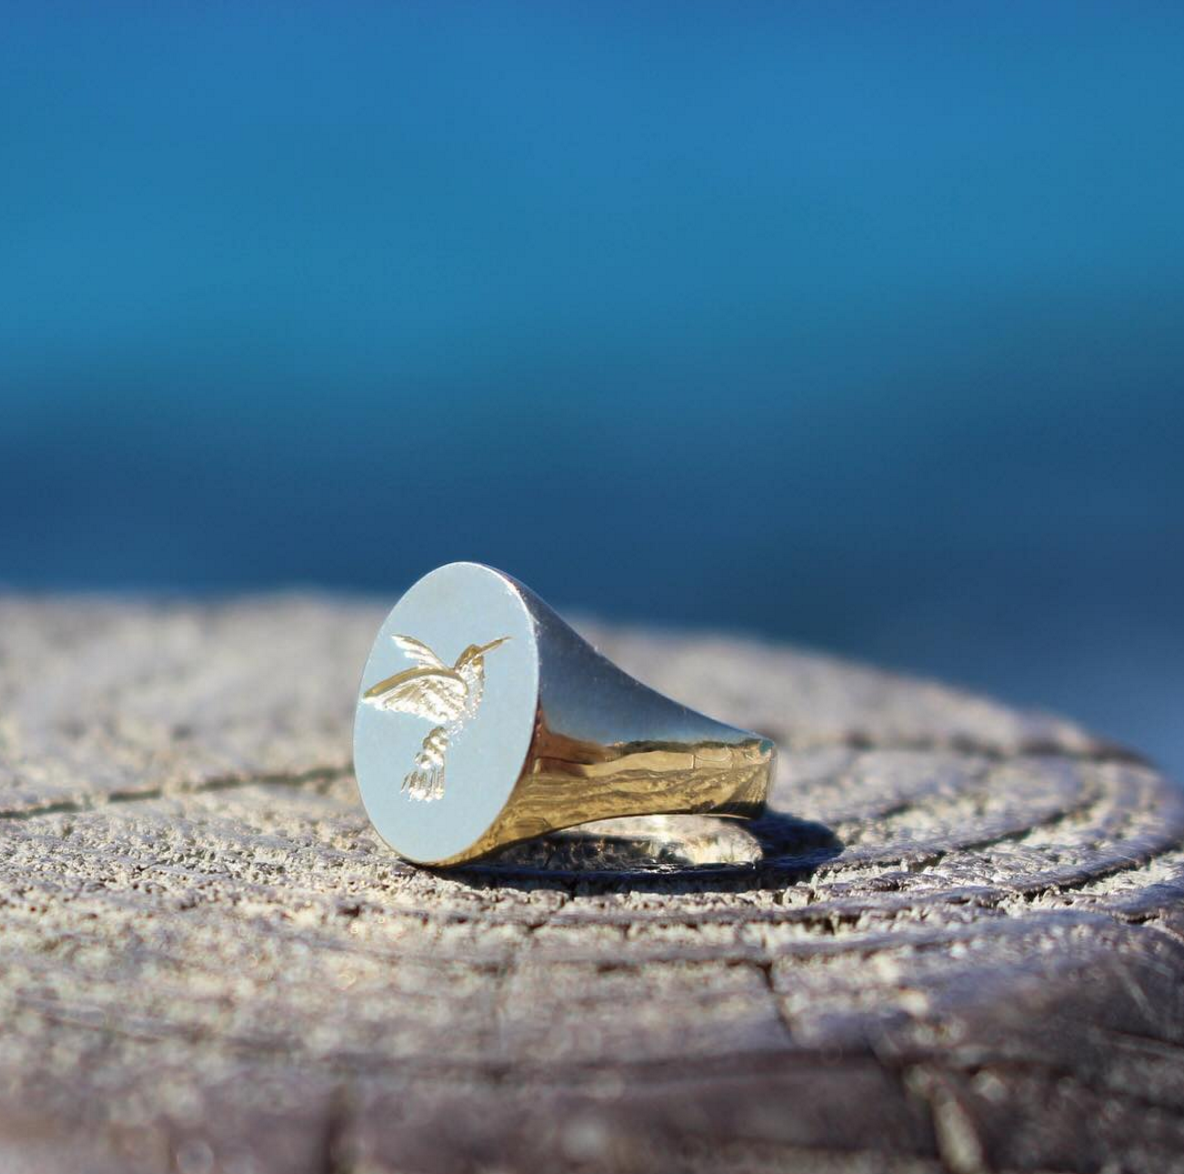 Read More about Rebus Signet Rings